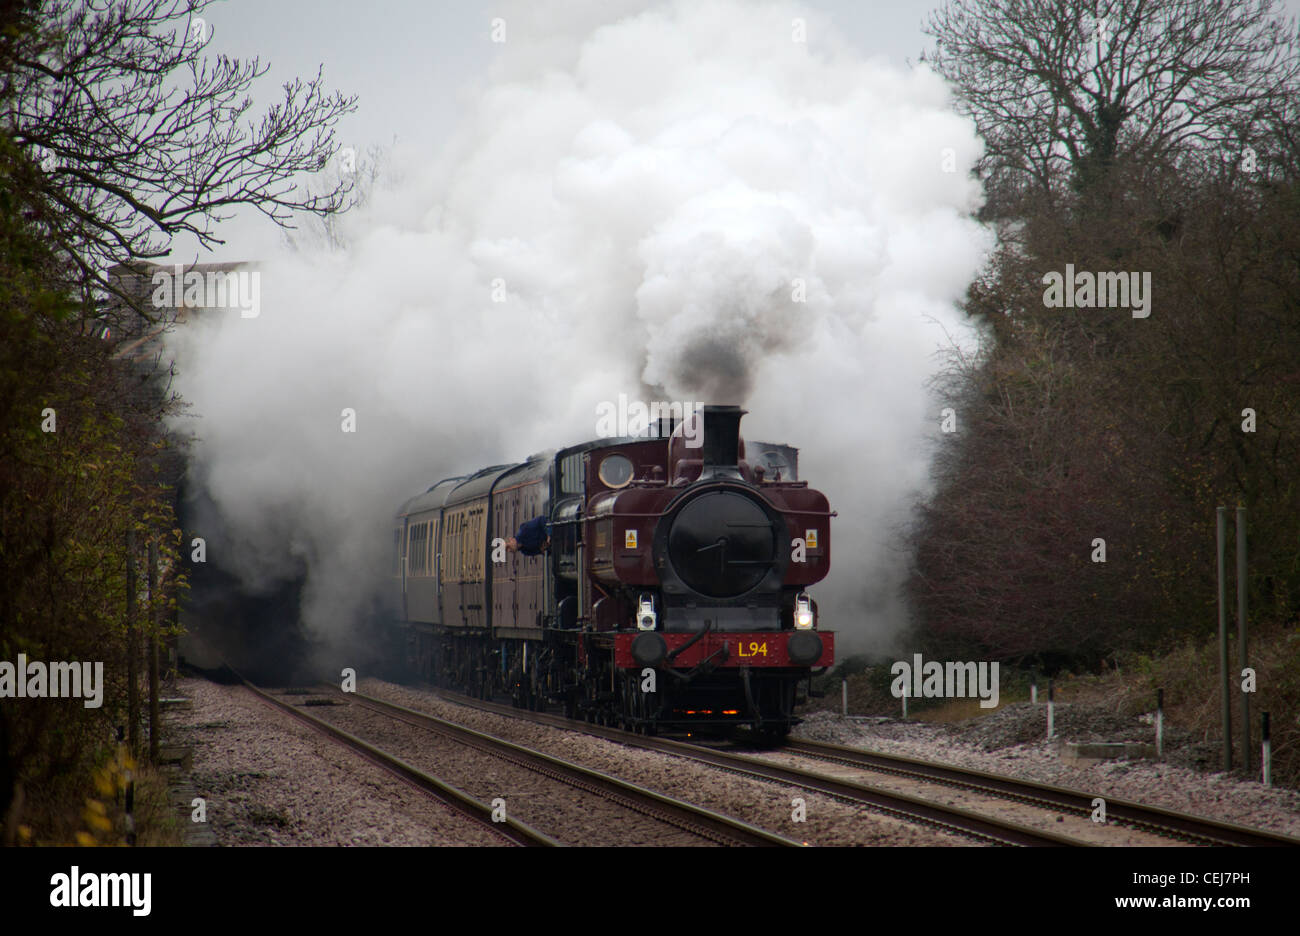 Pannier tank steam locomotives 7752 and 9600 pass Narborough, Leicestershire, England with charter train - Stock Image